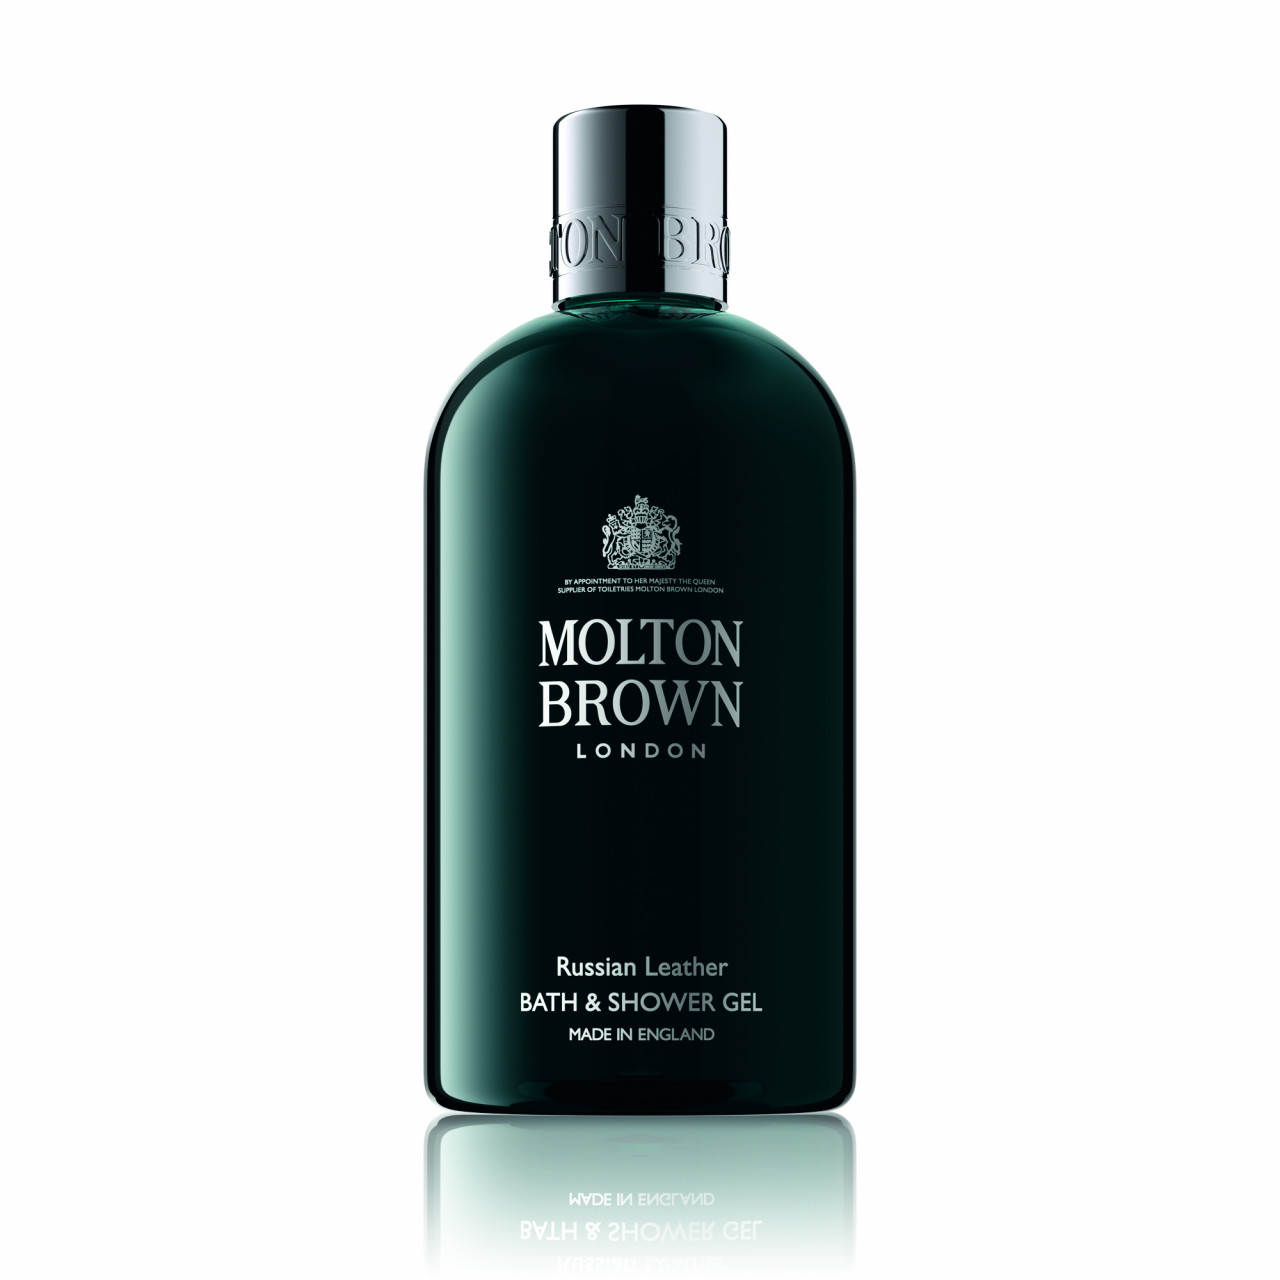 Russian Leather Russian Bath & Shower Gel